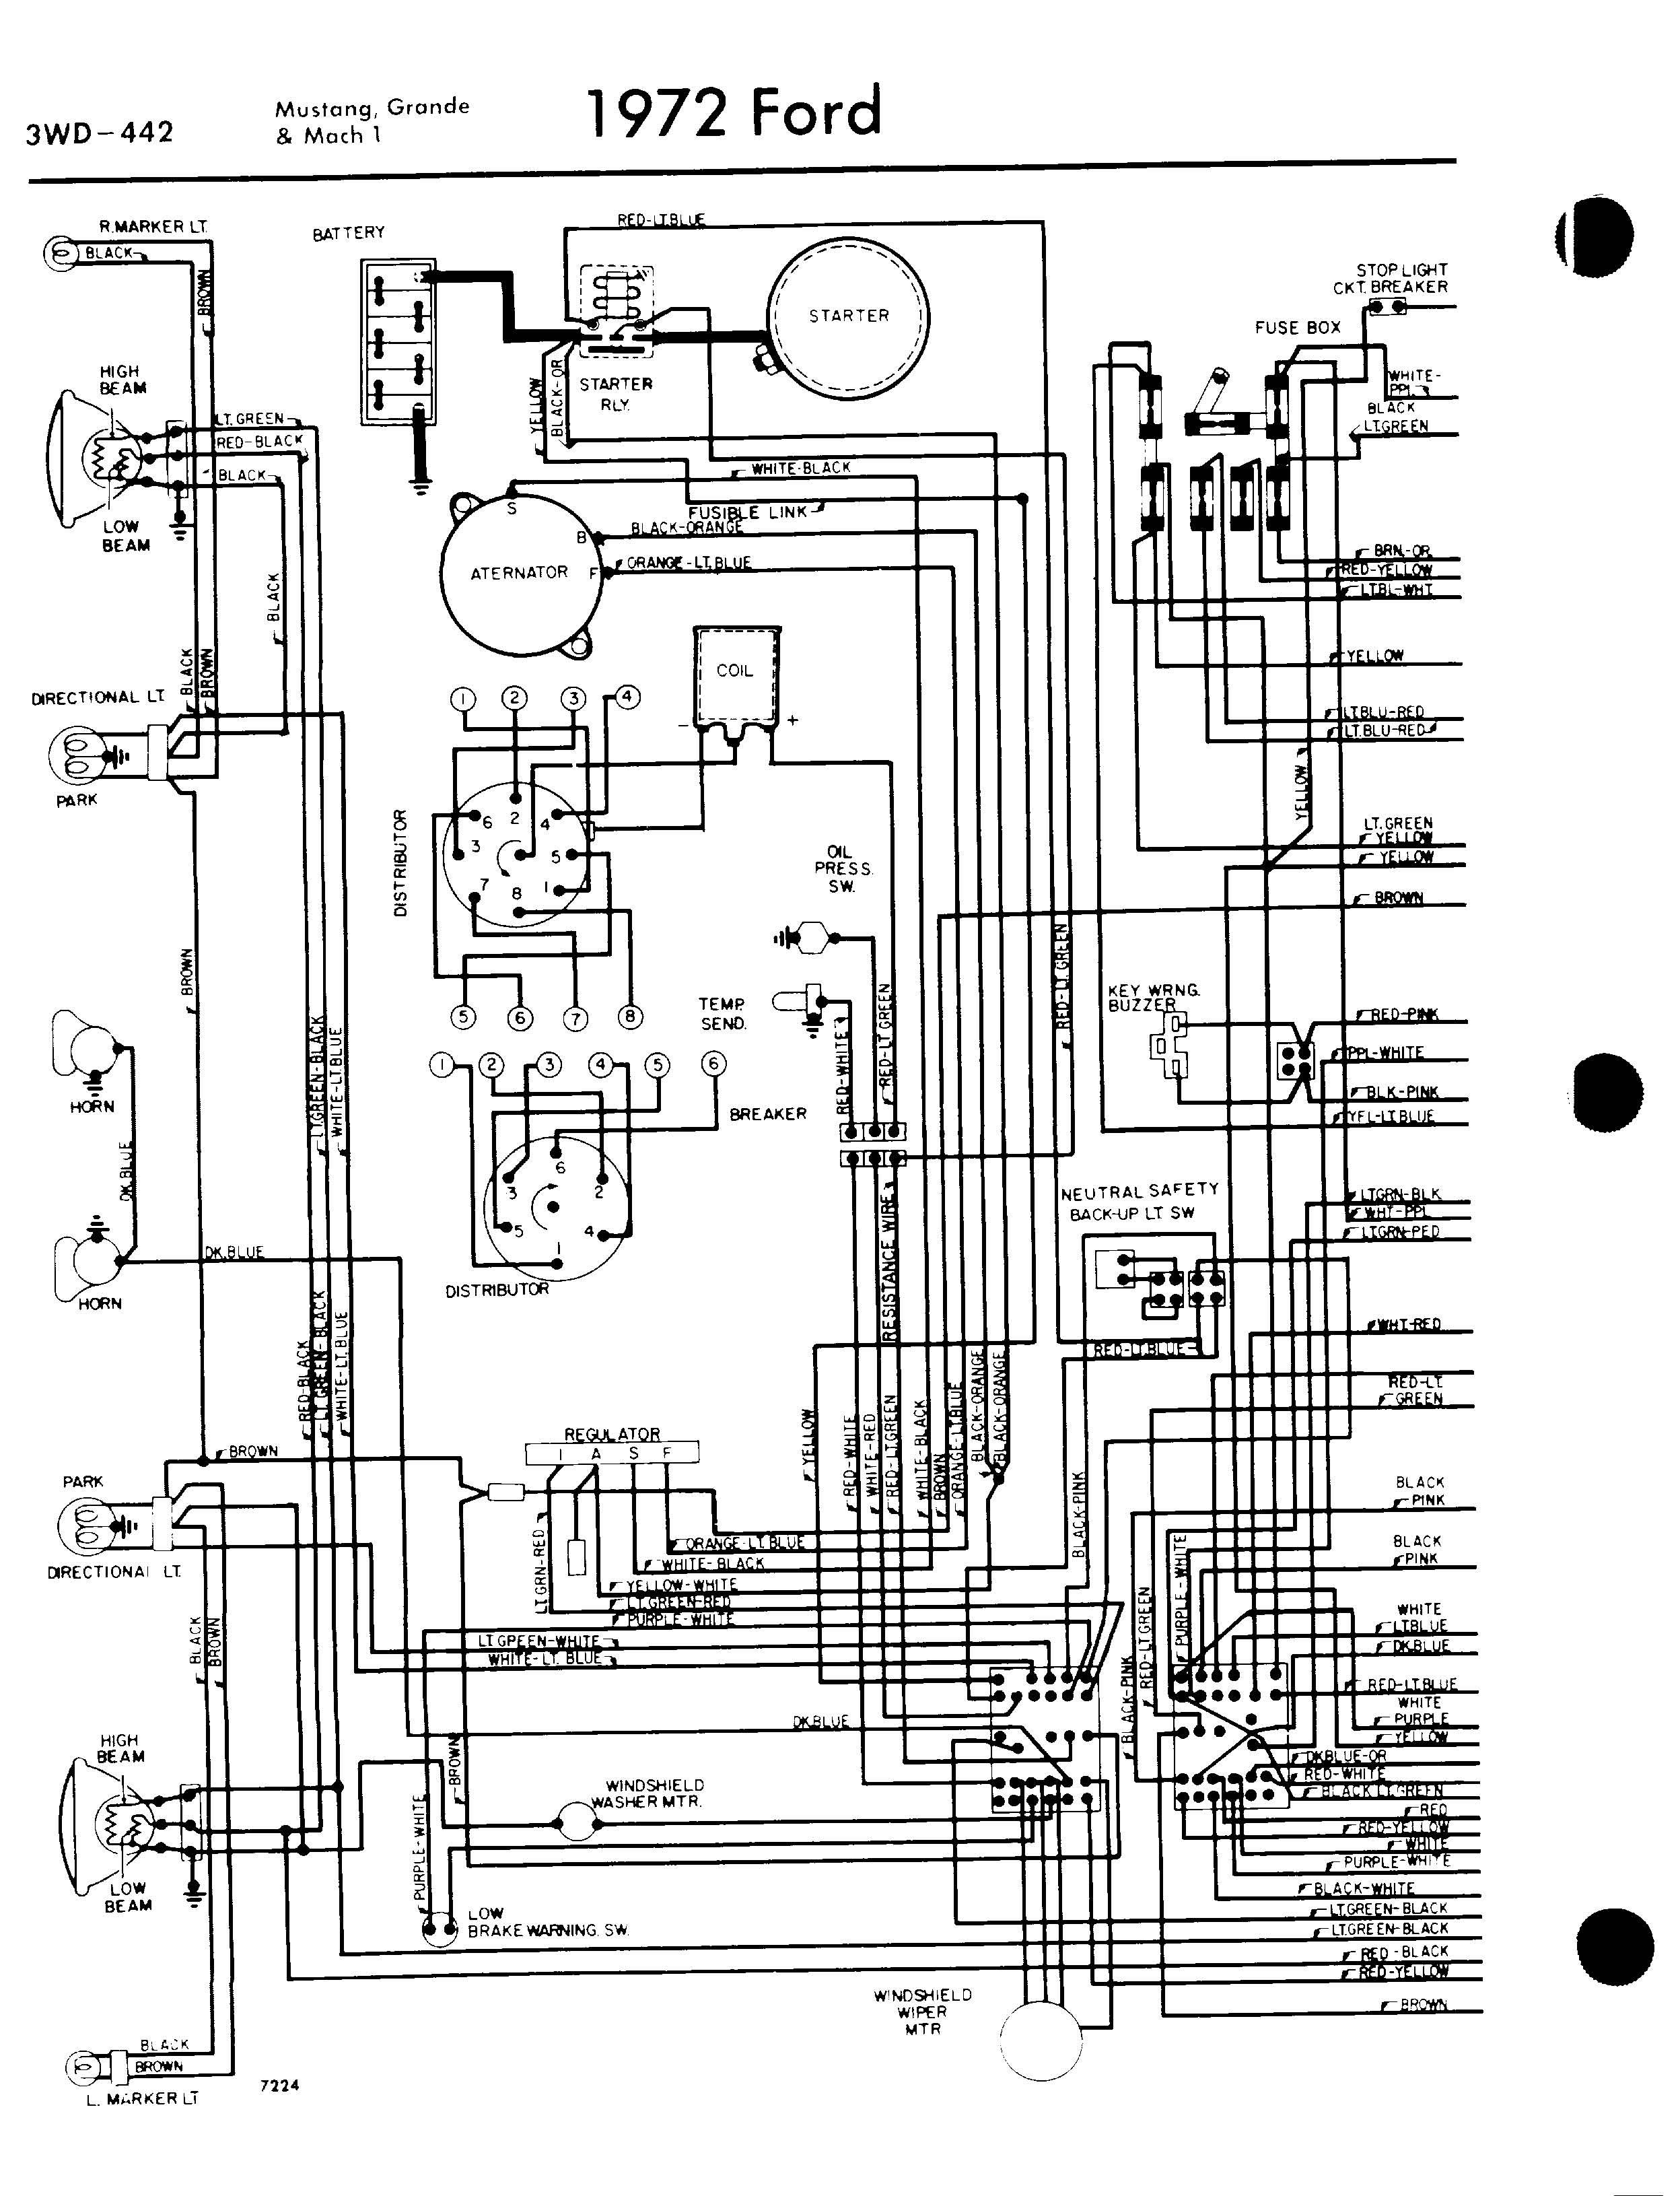 medium resolution of ford mustang engine wiring most exciting wiring diagram 2005 ford mustang engine wiring diagram ford mustang engine wiring